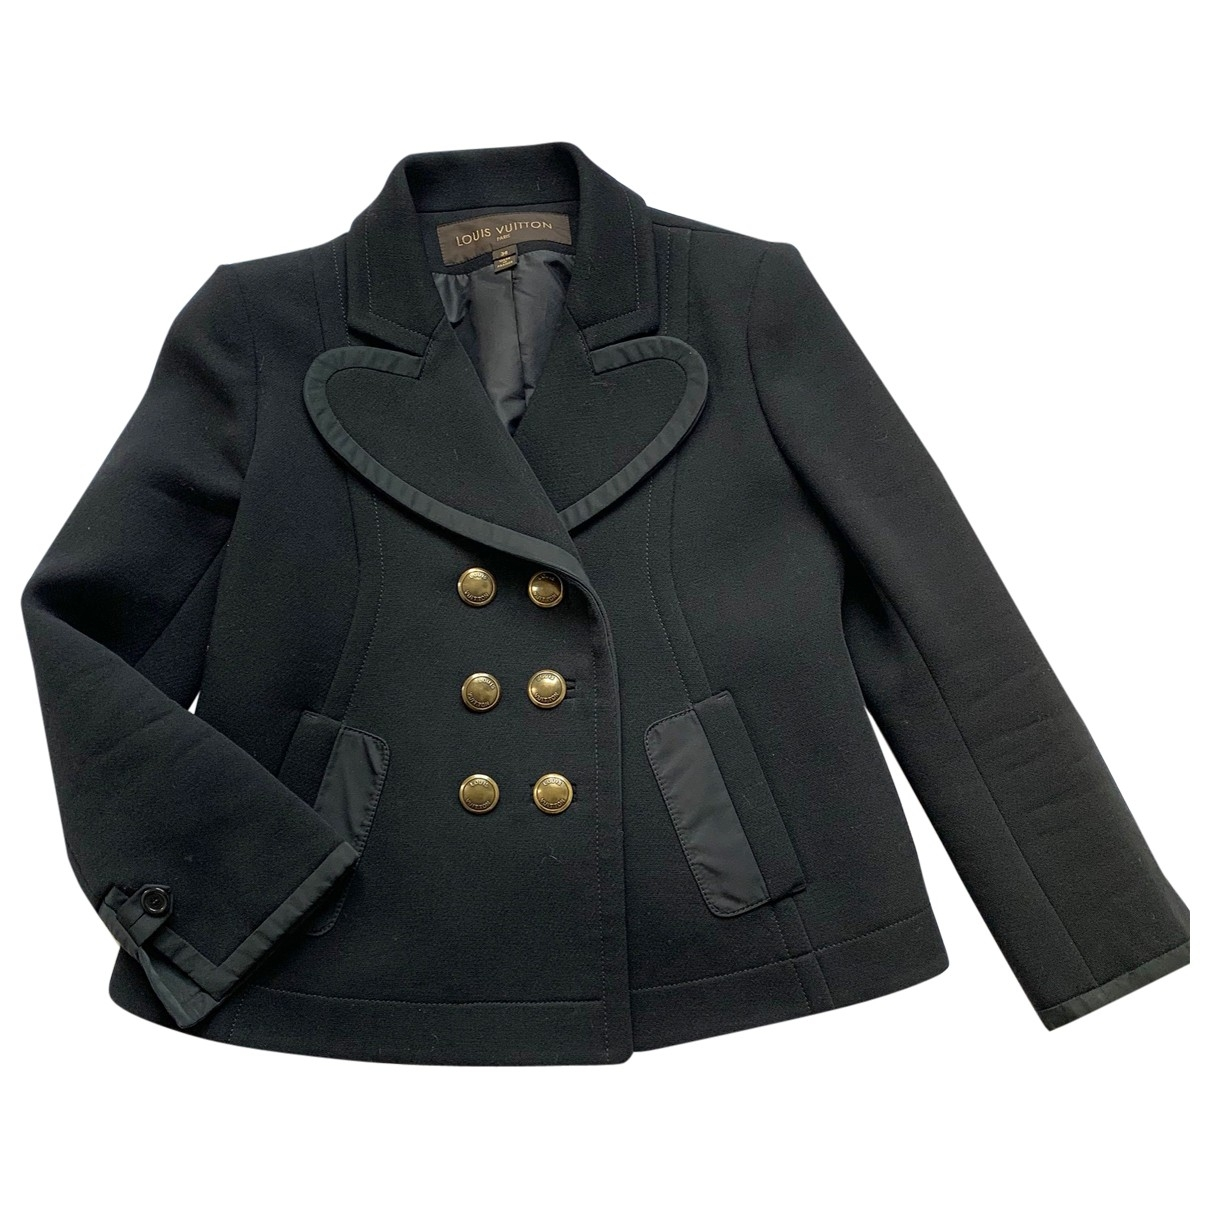 Louis Vuitton \N Black Wool jacket for Women 36 FR